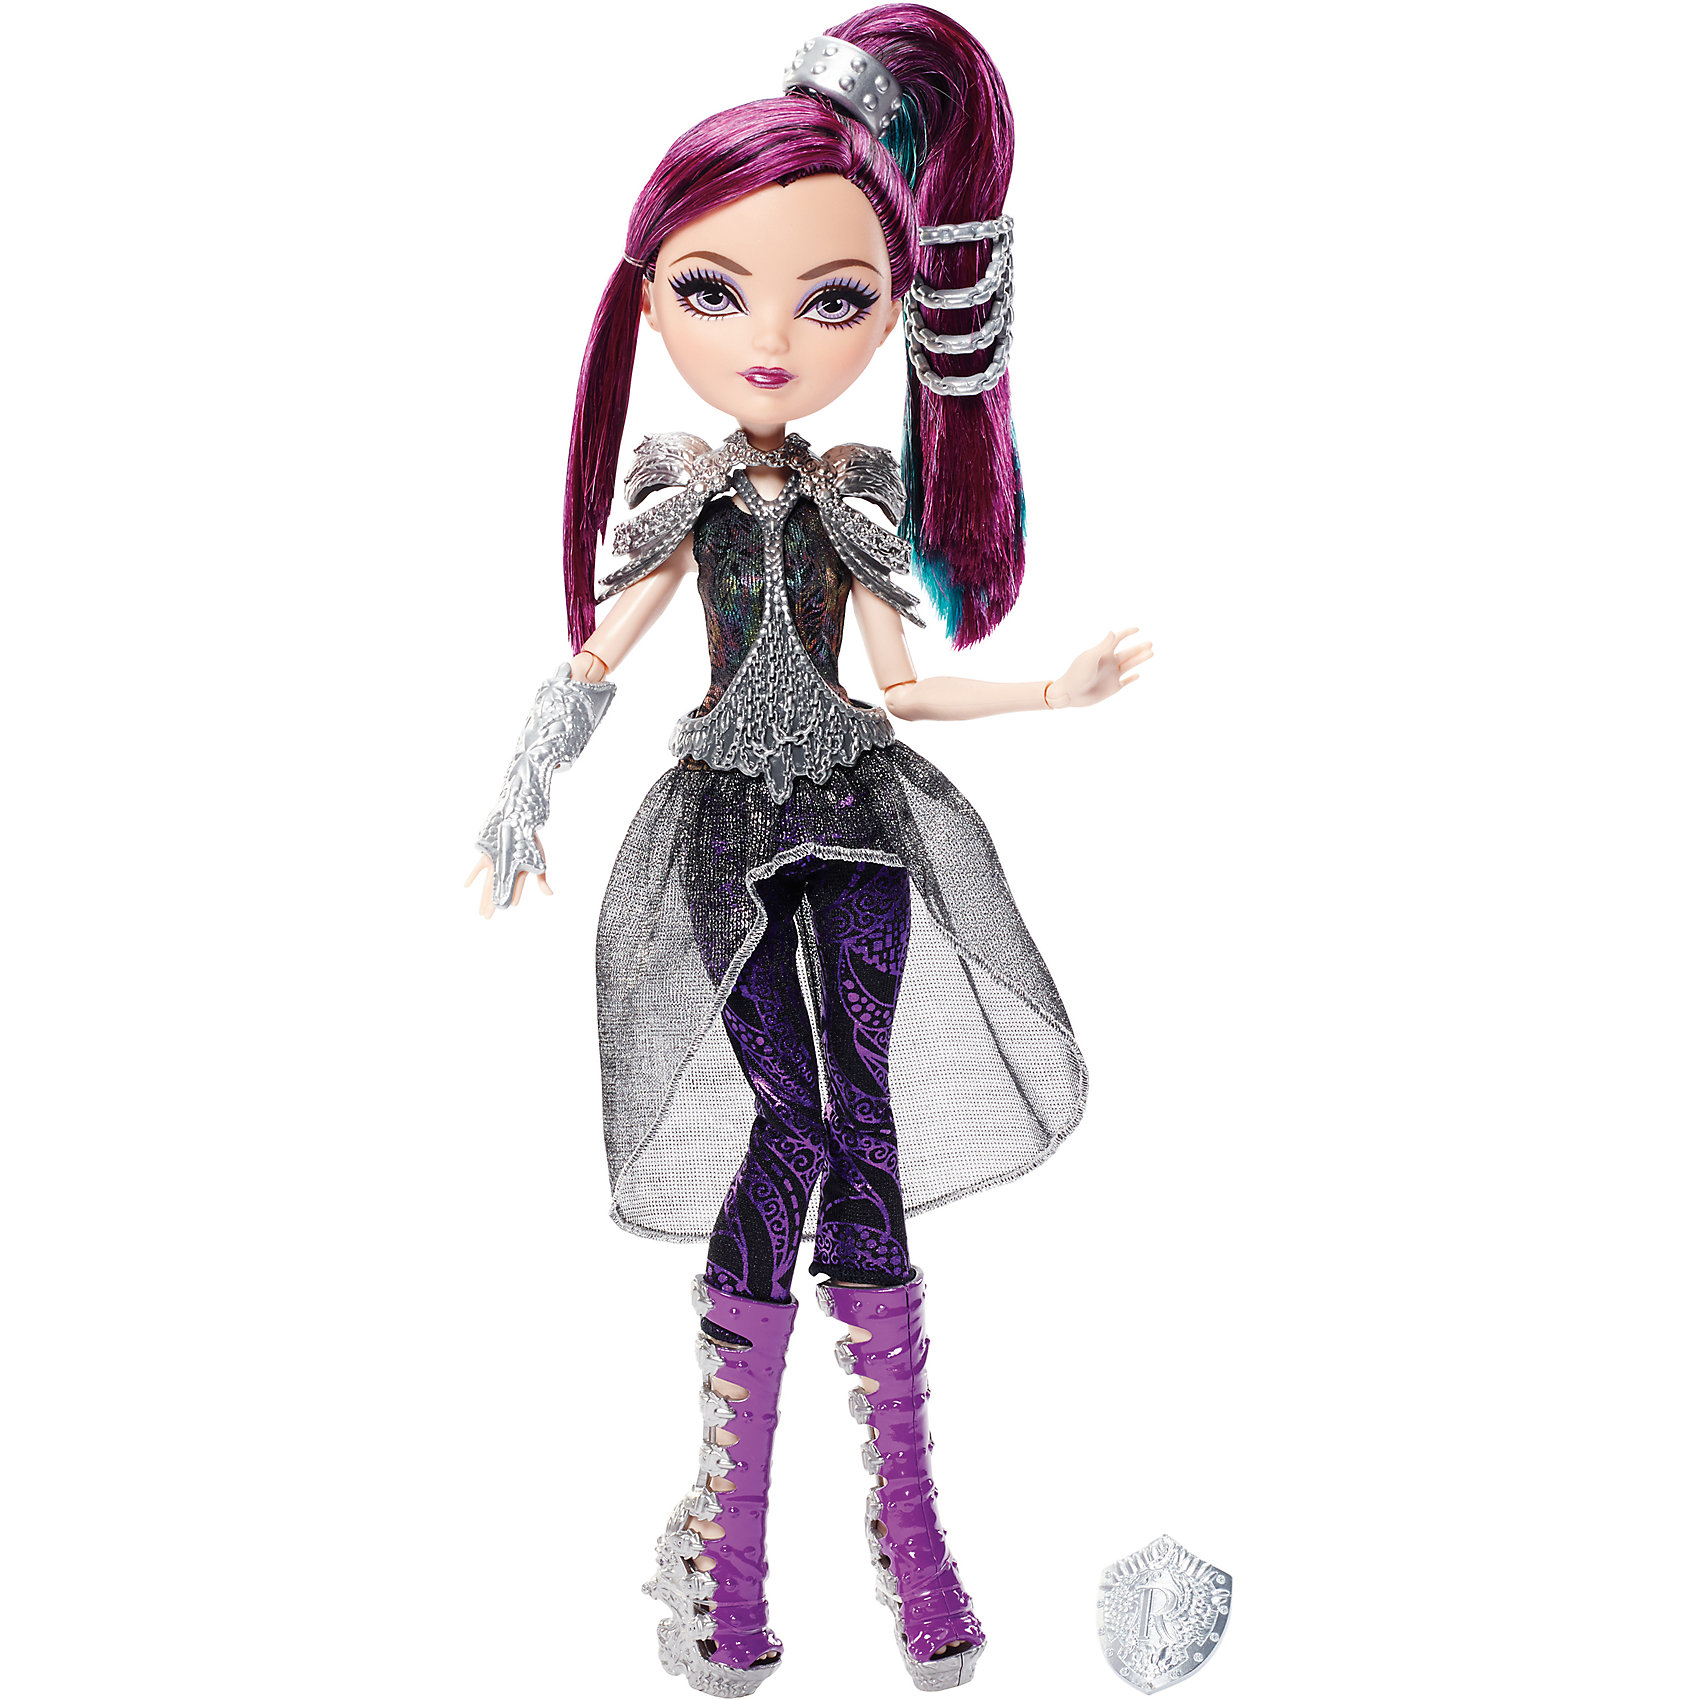 Mattel Кукла Рэйвен Квин Игра Драконов, Ever After High mattel ever after high dvh81 куклы лучницы банни бланк